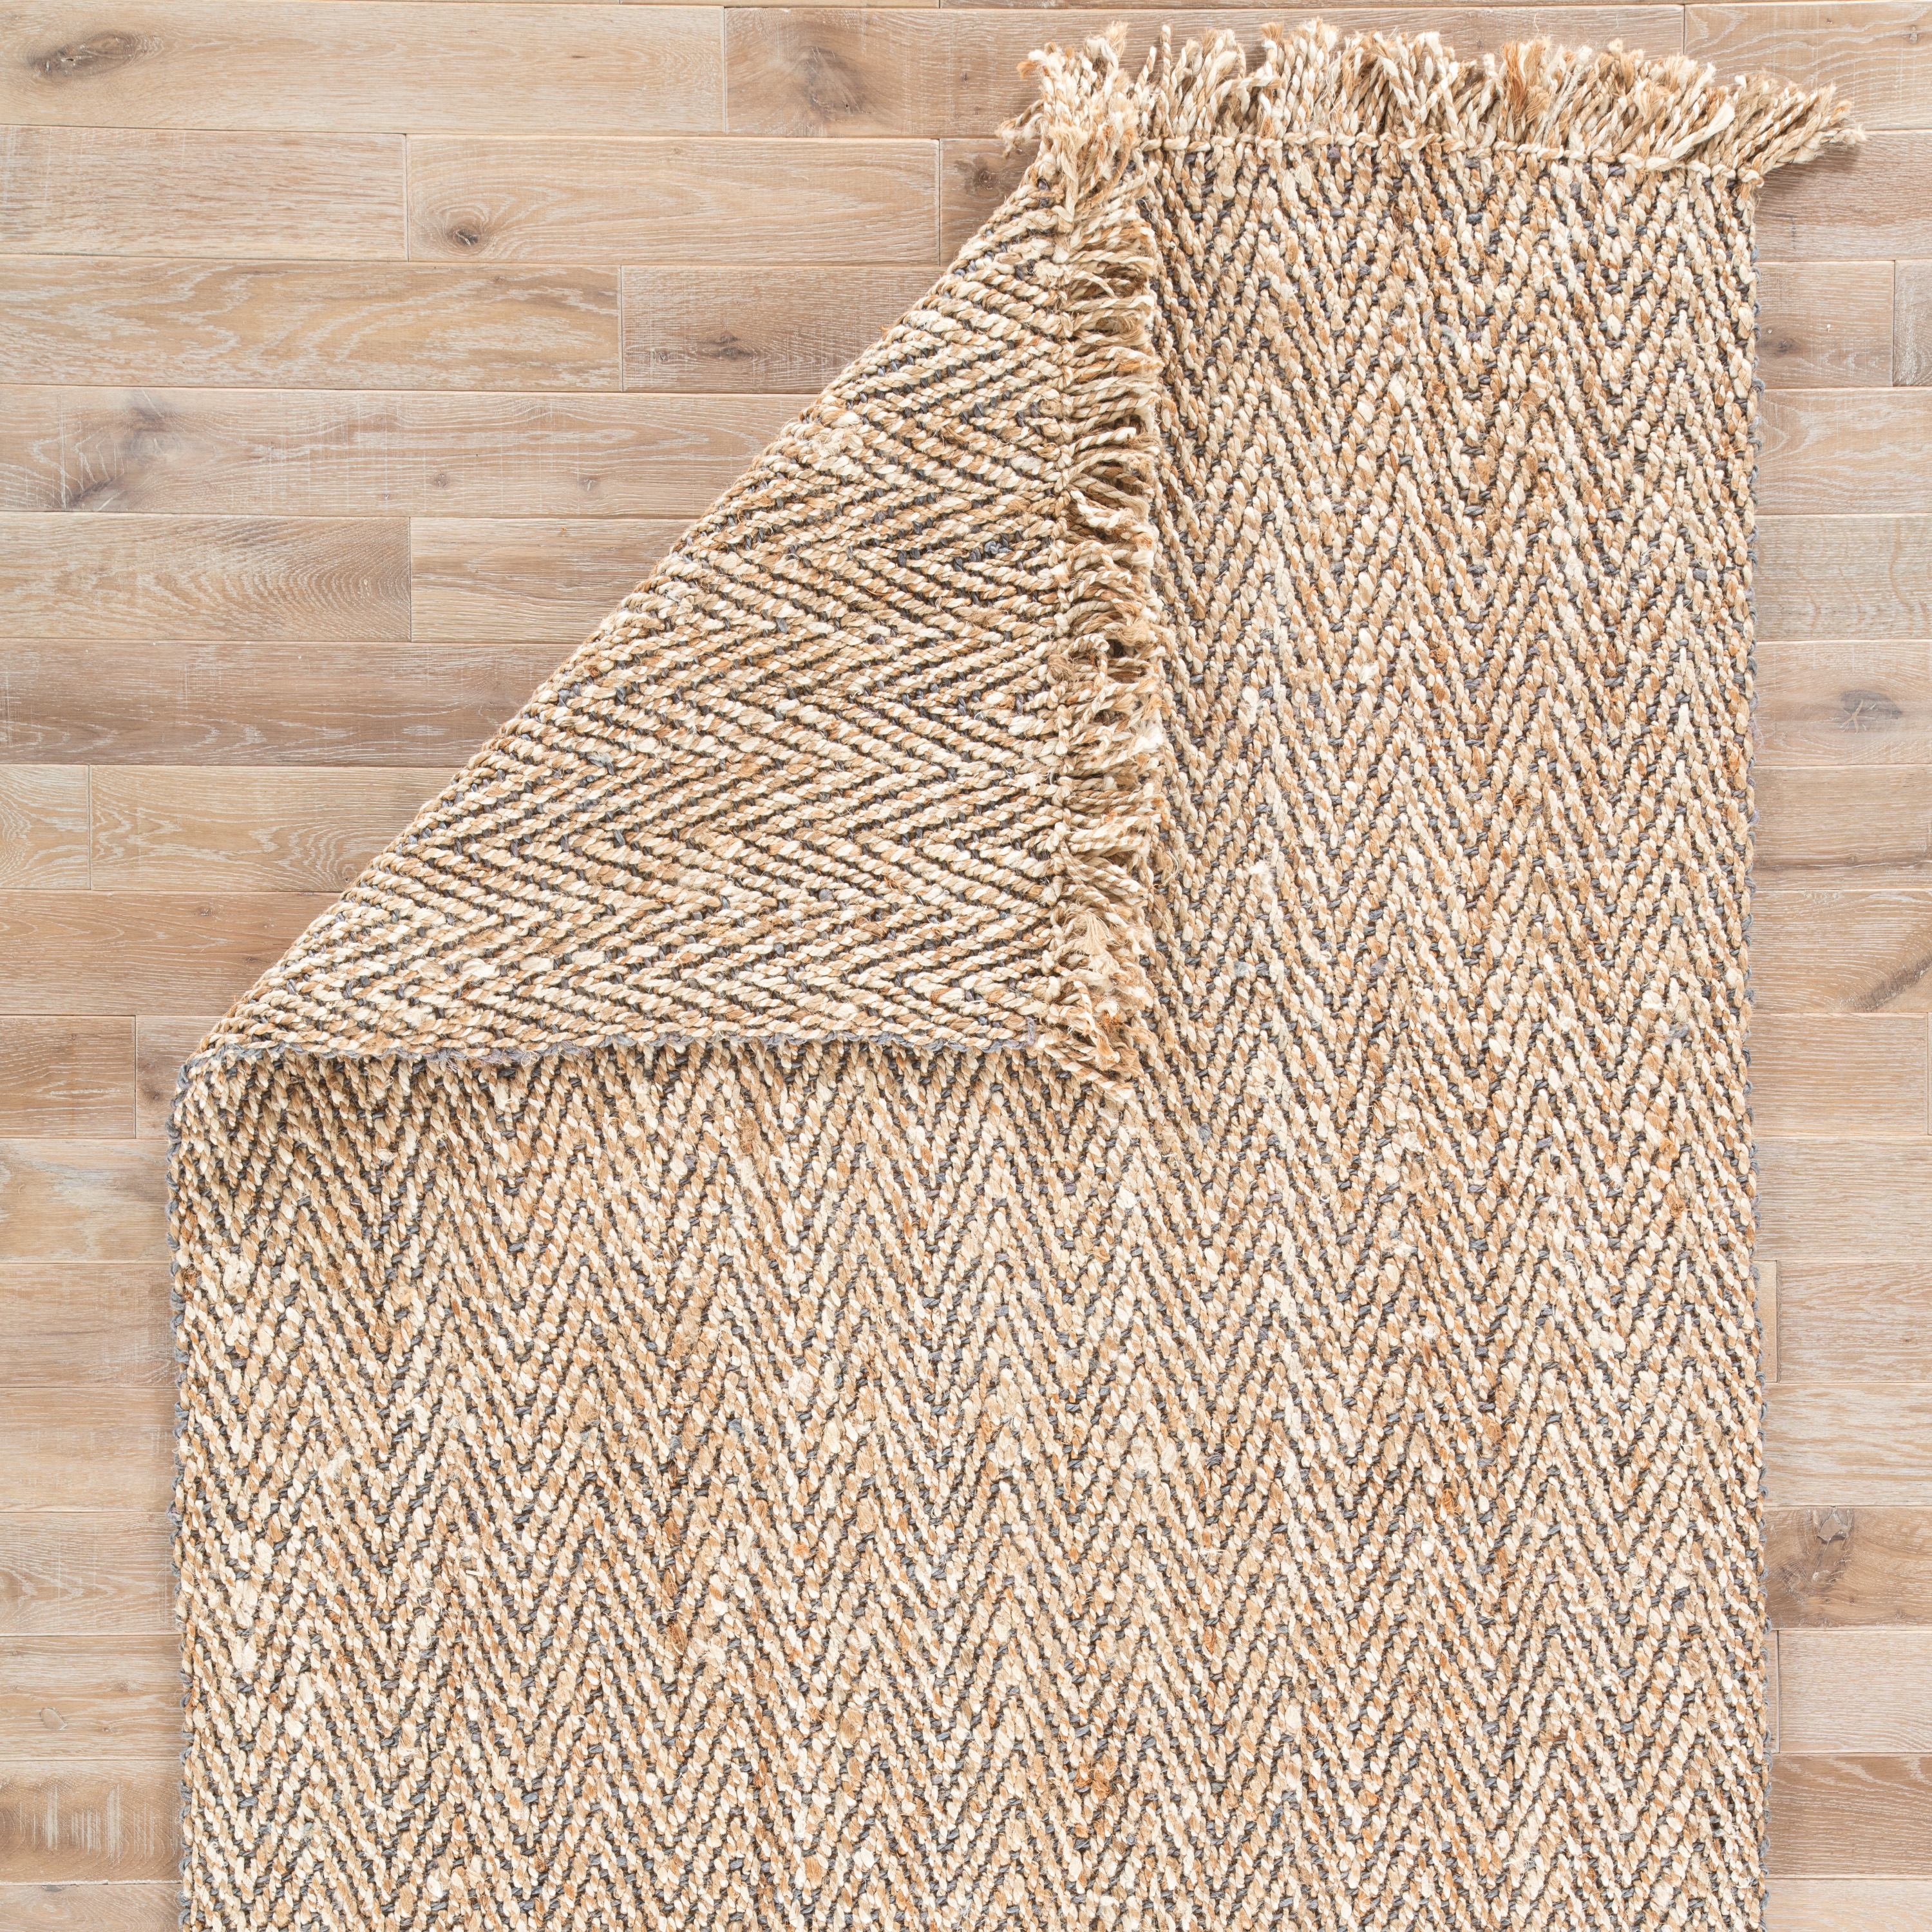 Hoopes Natural Chevron Beige/ Gray Area Rug (9' X 12')